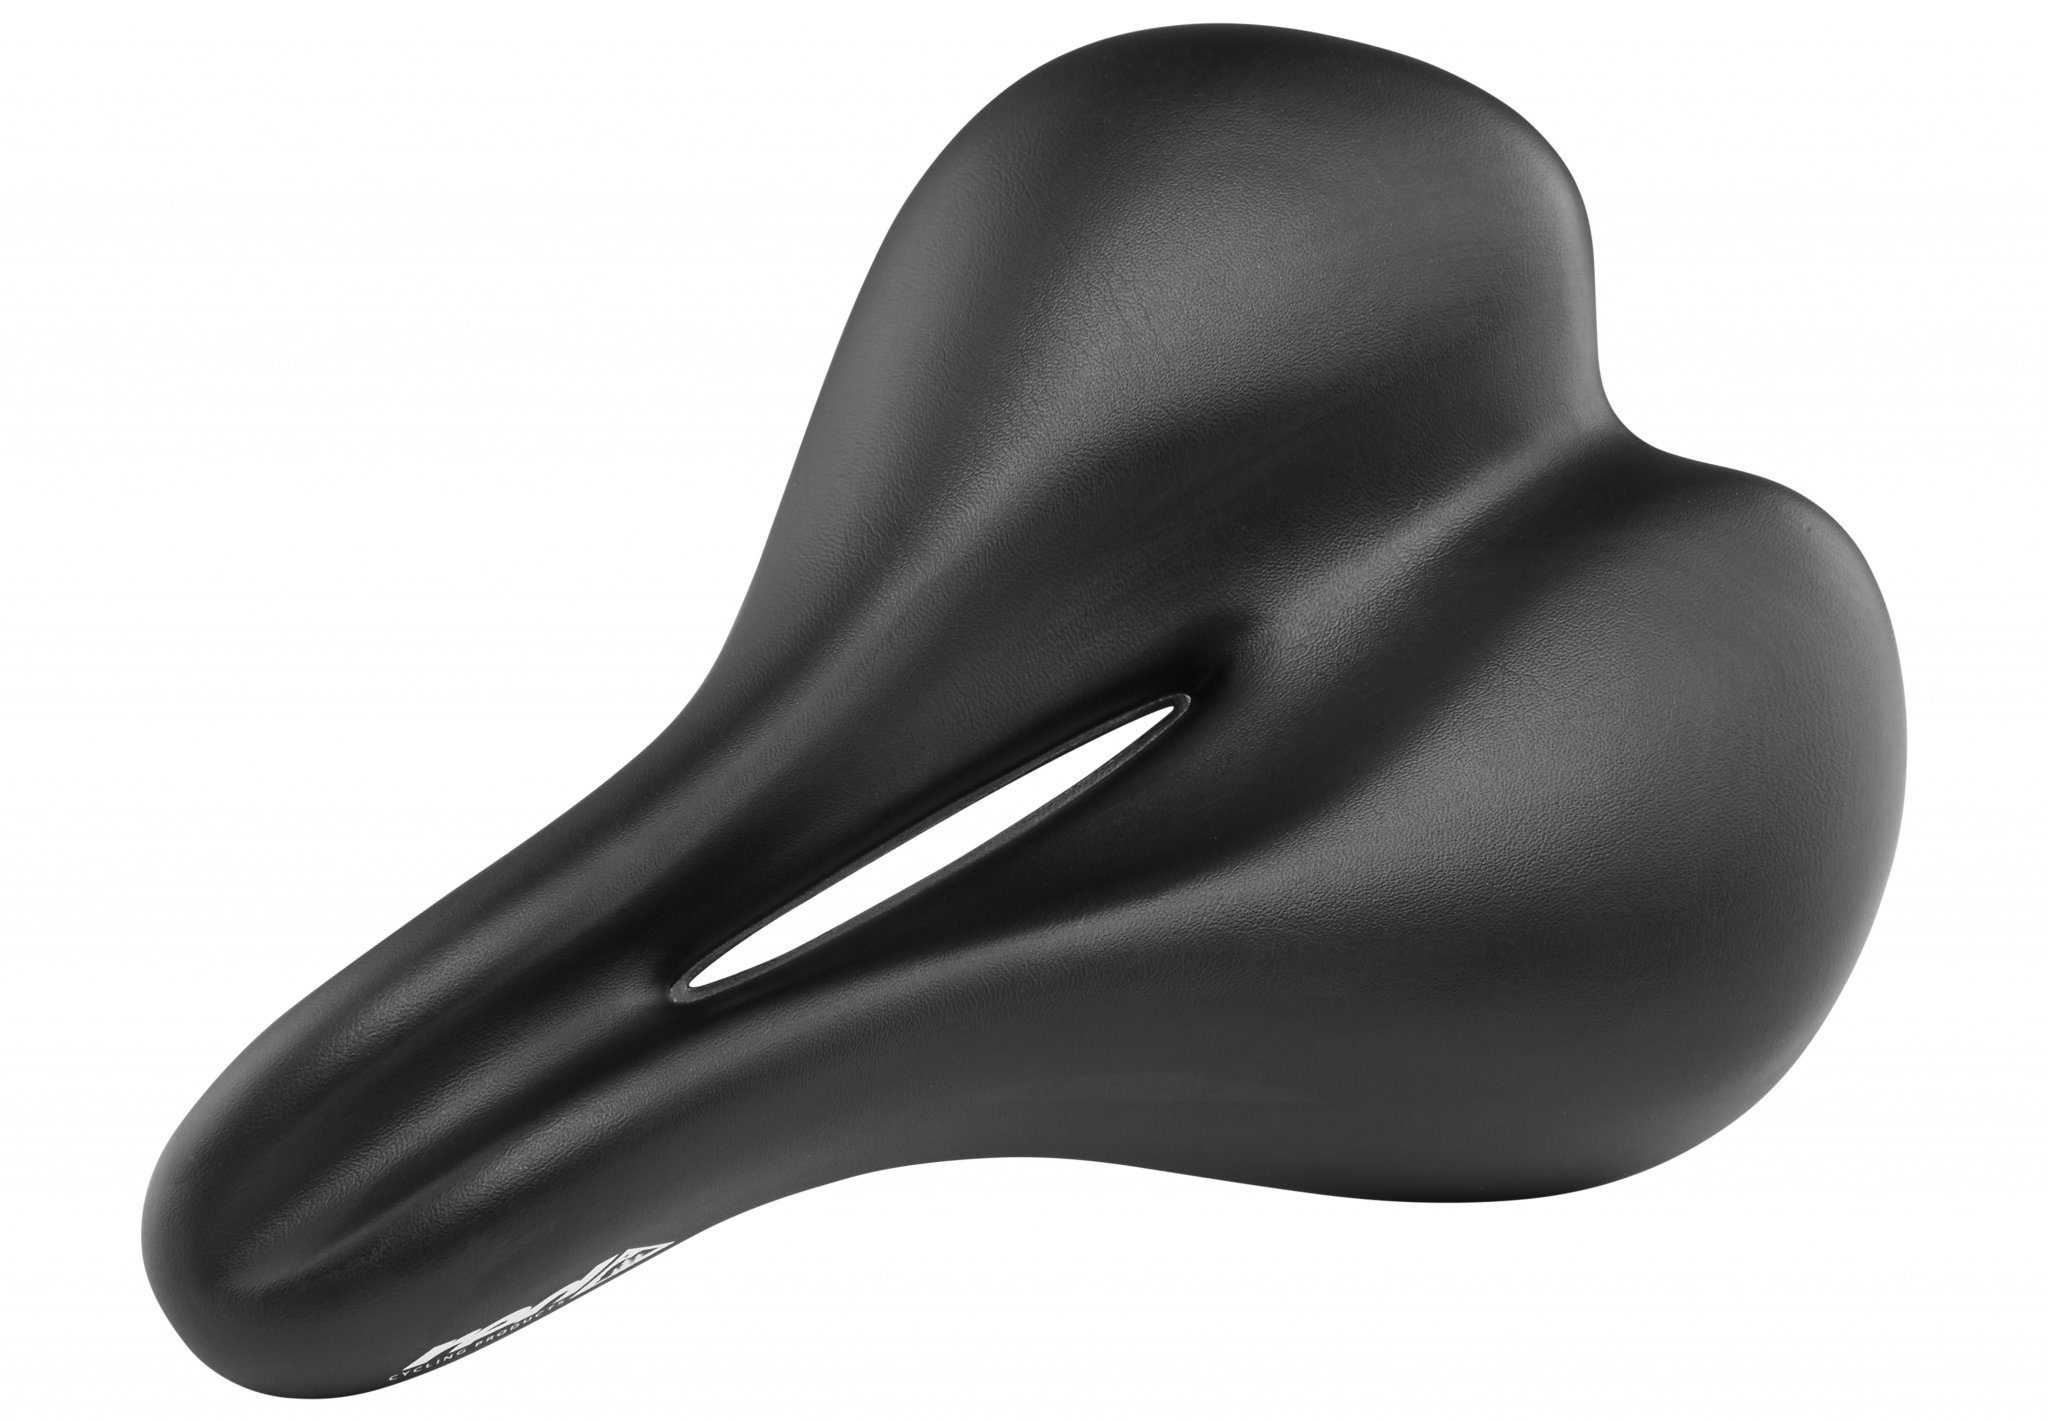 Red Cycling Products Fahrradsattel »Lady Sports Comfort Saddle«